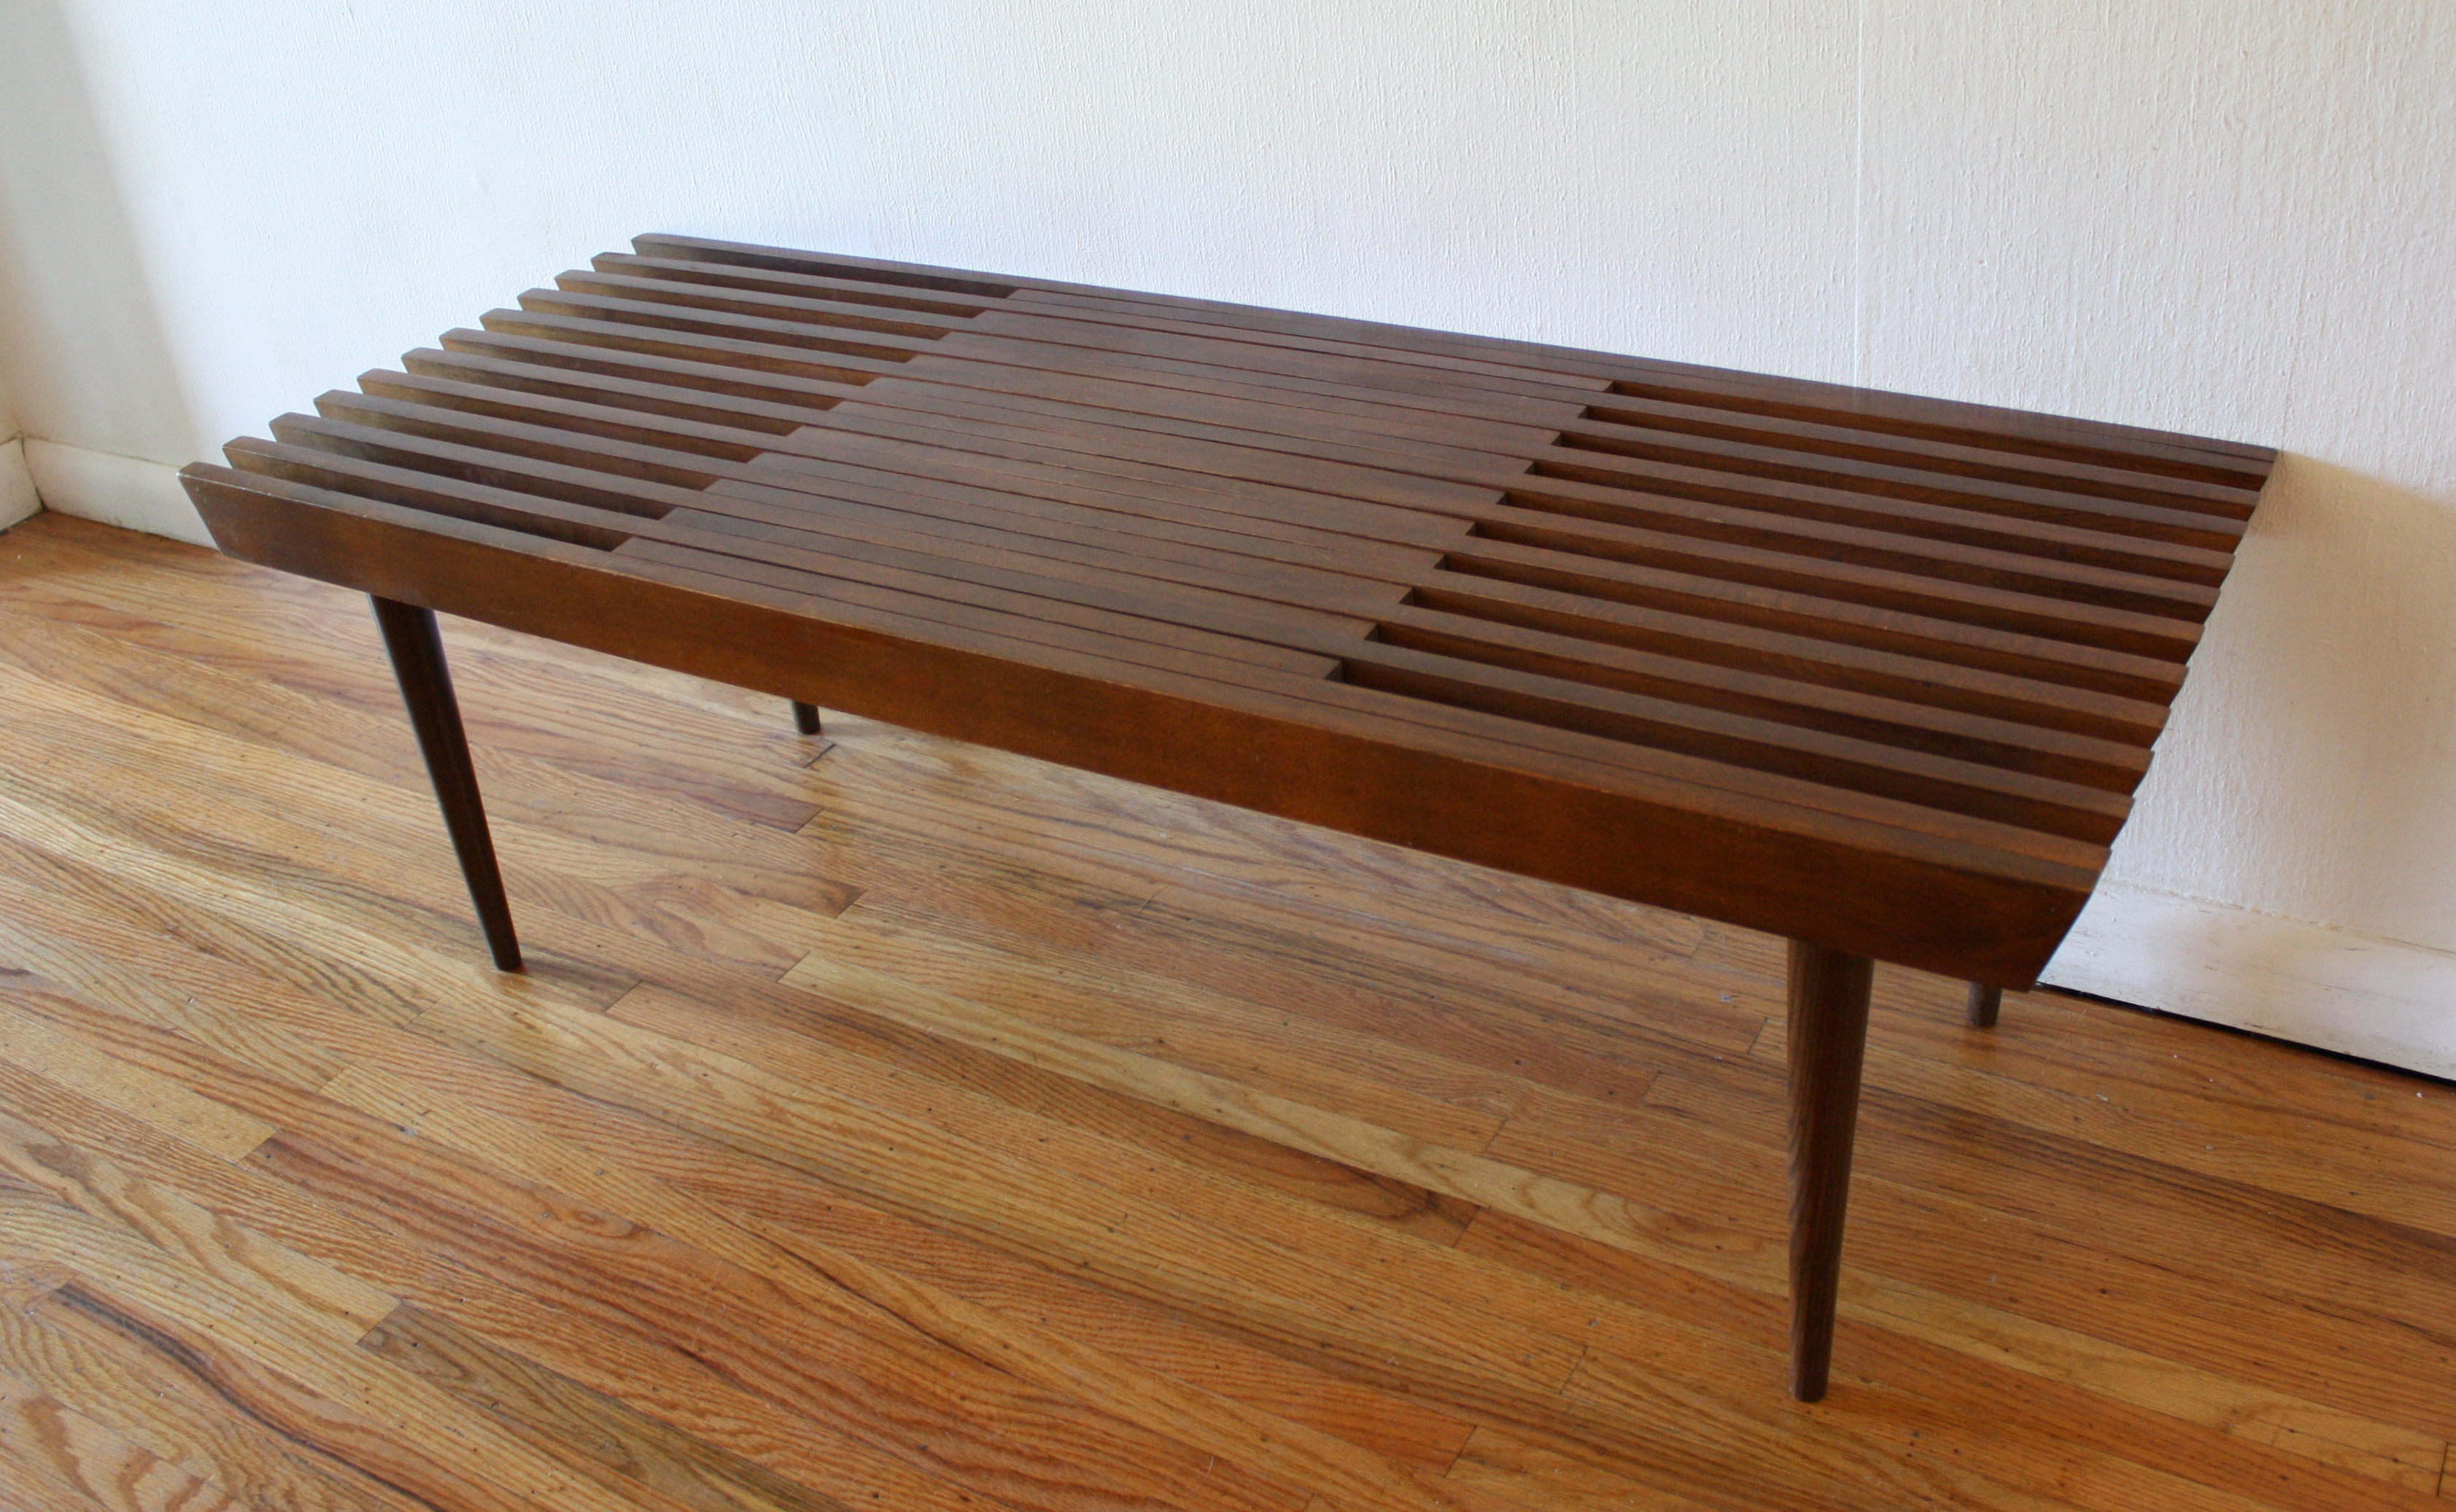 mcm extending slatted bench 1